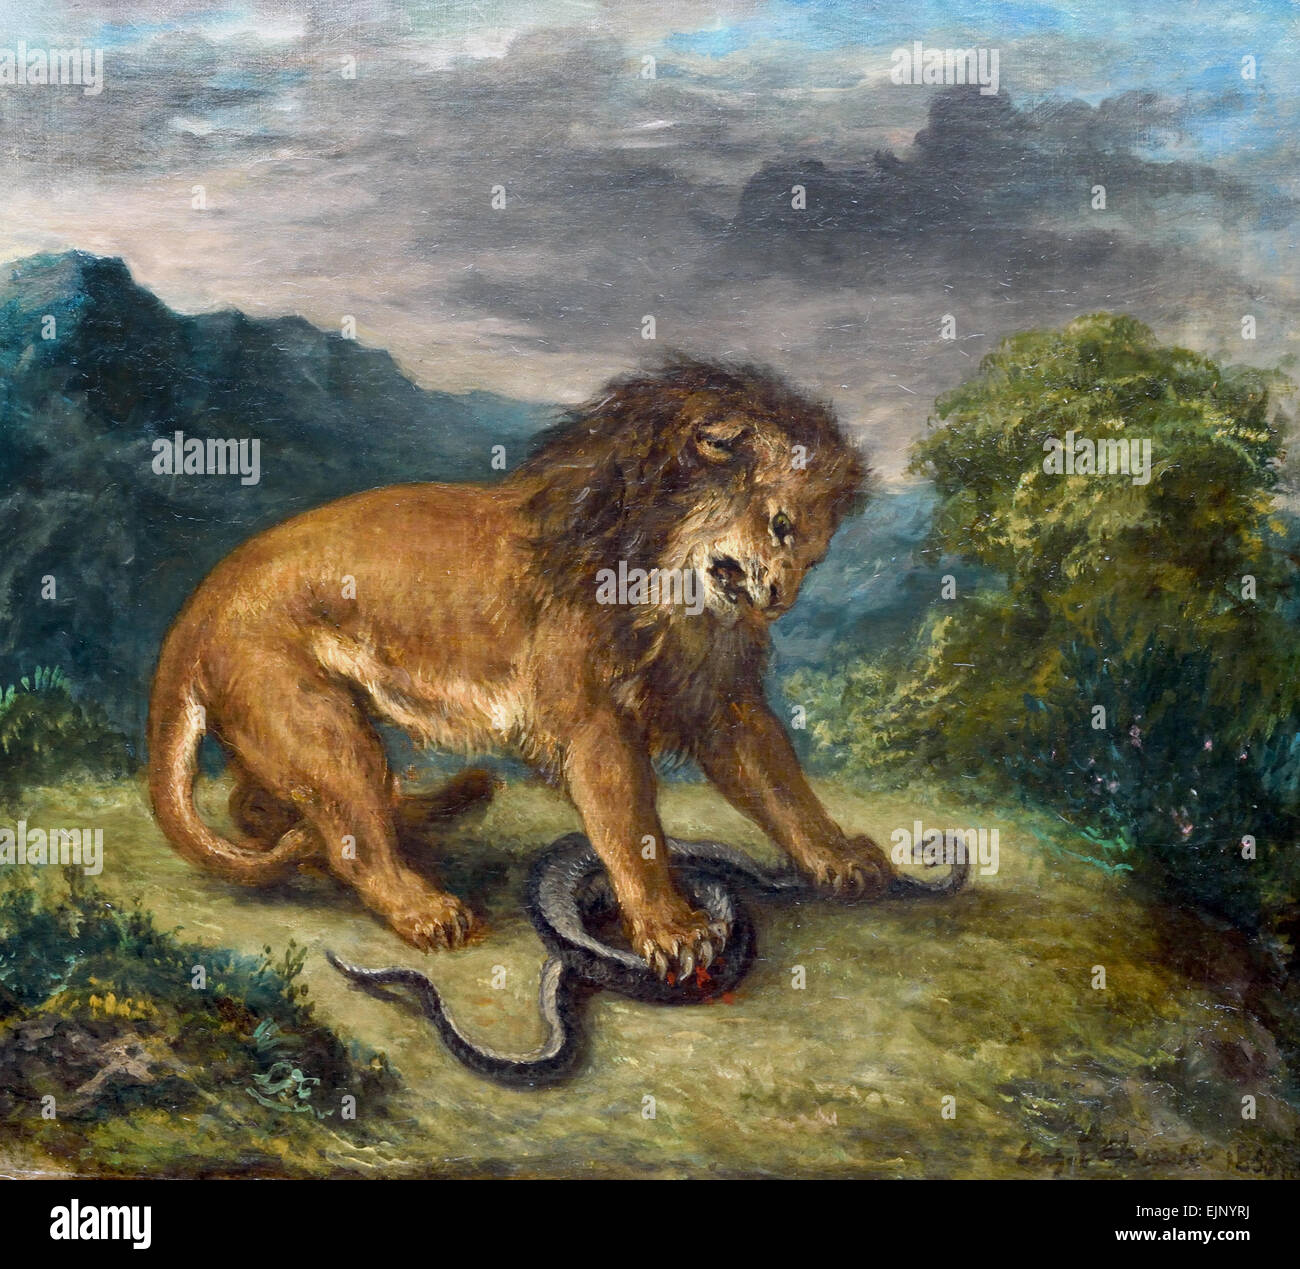 le-lion-et-le-serpent-1856-the-lion-and-